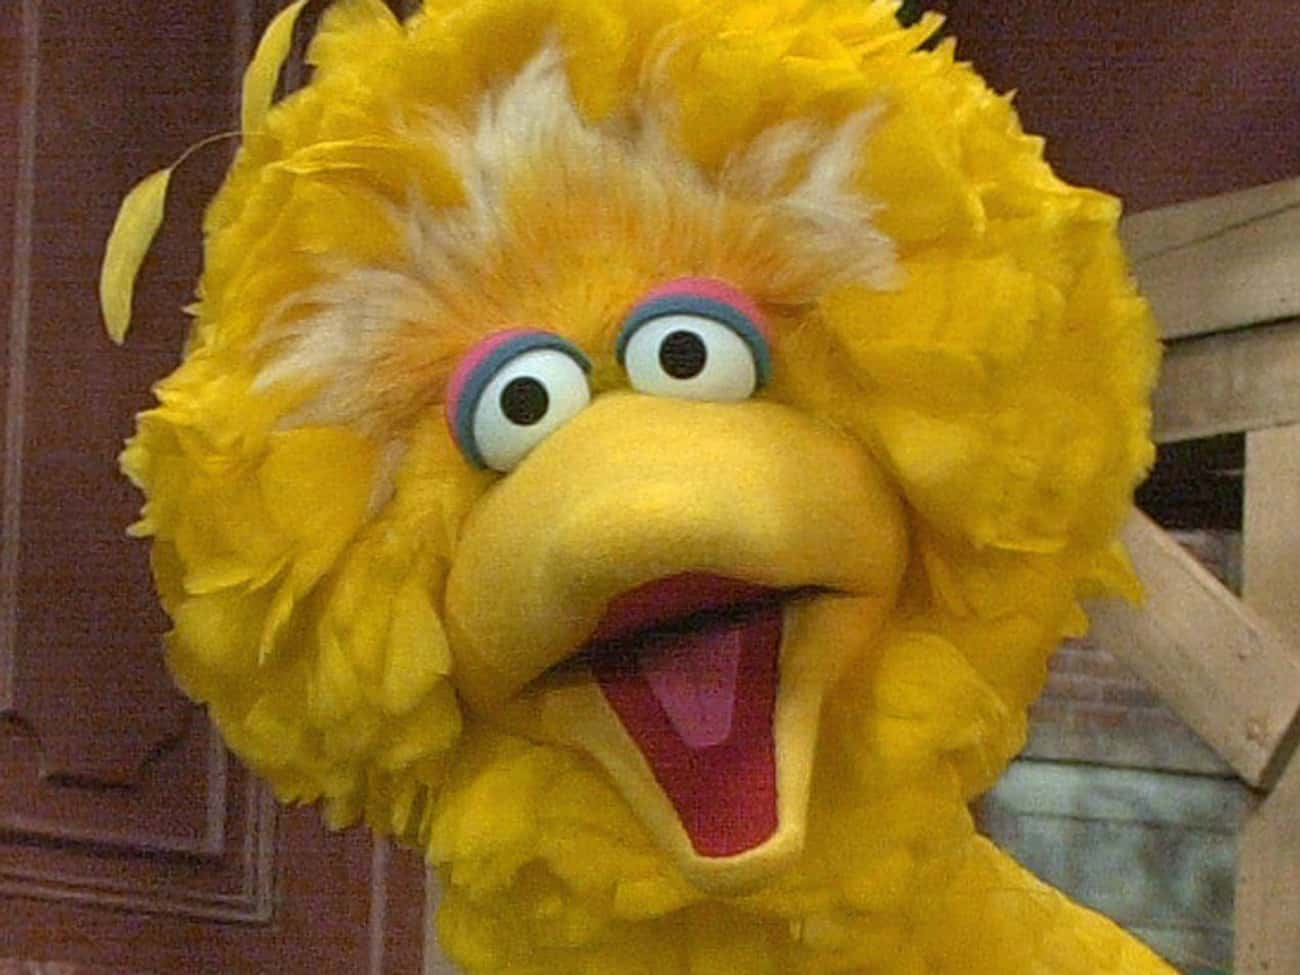 Big Bird Is Six Years Old is listed (or ranked) 4 on the list 17 Fictional Characters Whose Ages You Were Totally Wrong About